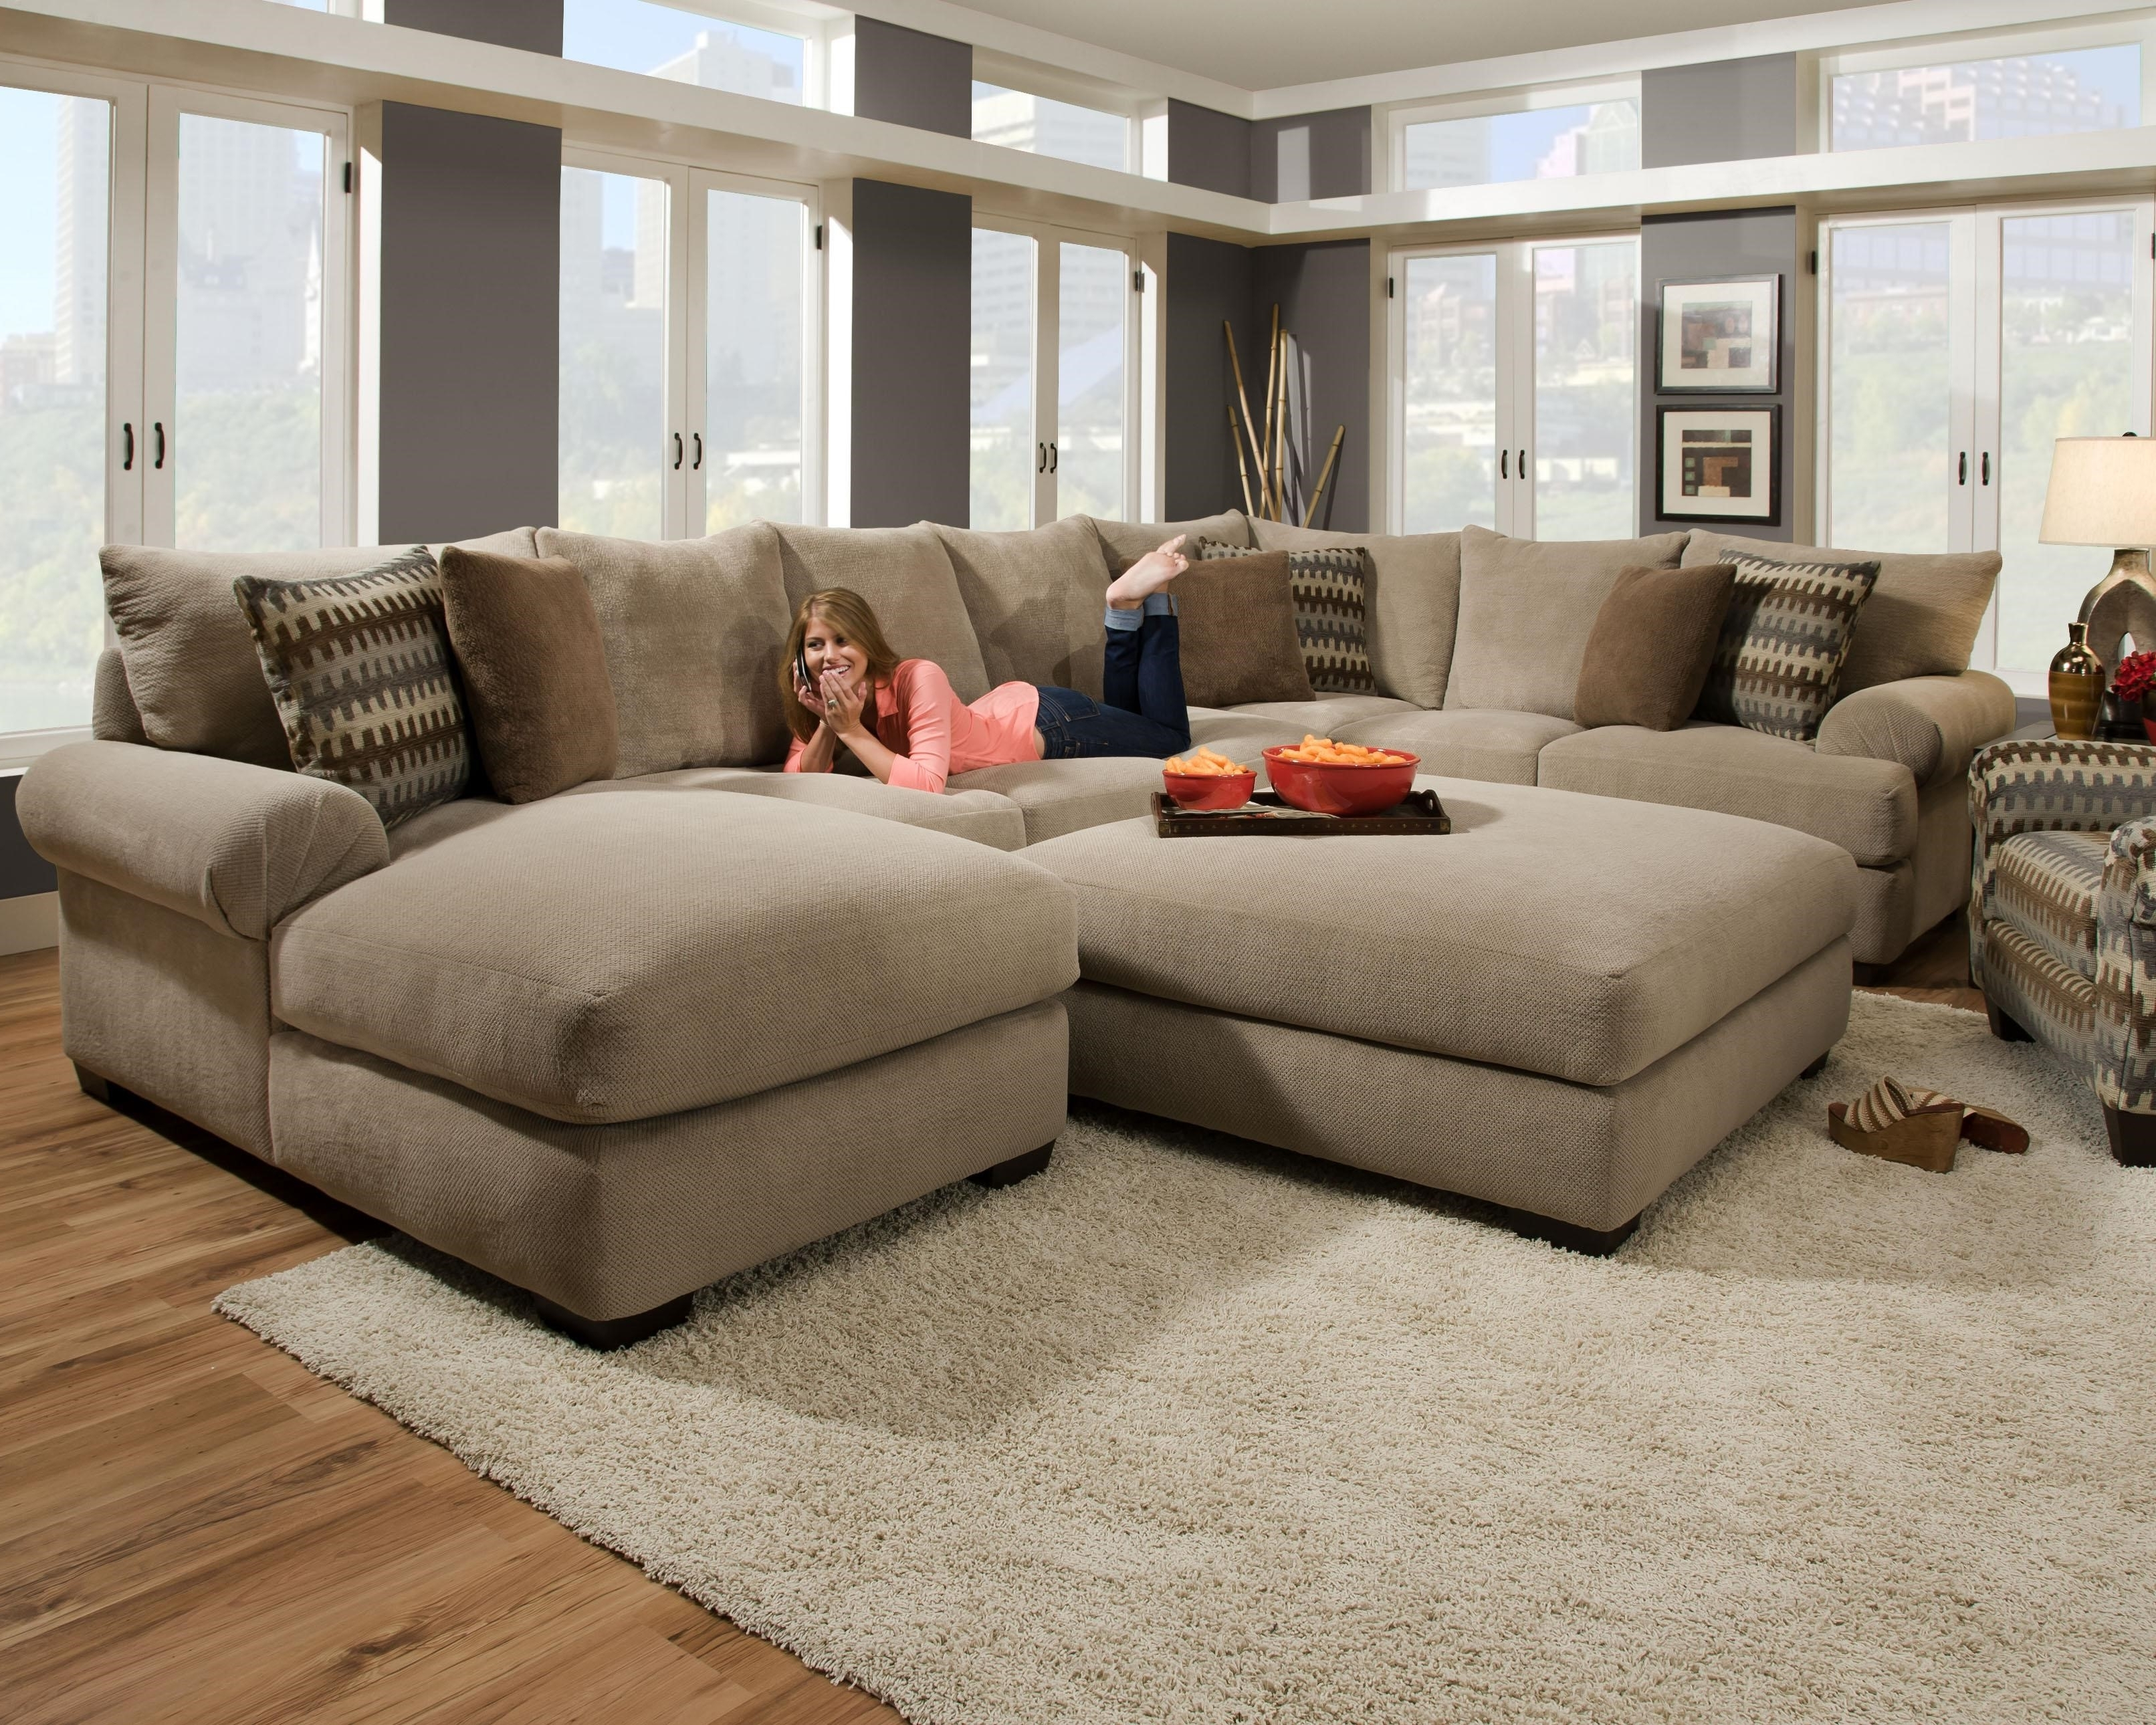 Well Liked Fancy Oversized Sectional Sofas Cheap 49 With Additional Sectional Pertaining To Sectional Sofas At Edmonton (View 20 of 20)